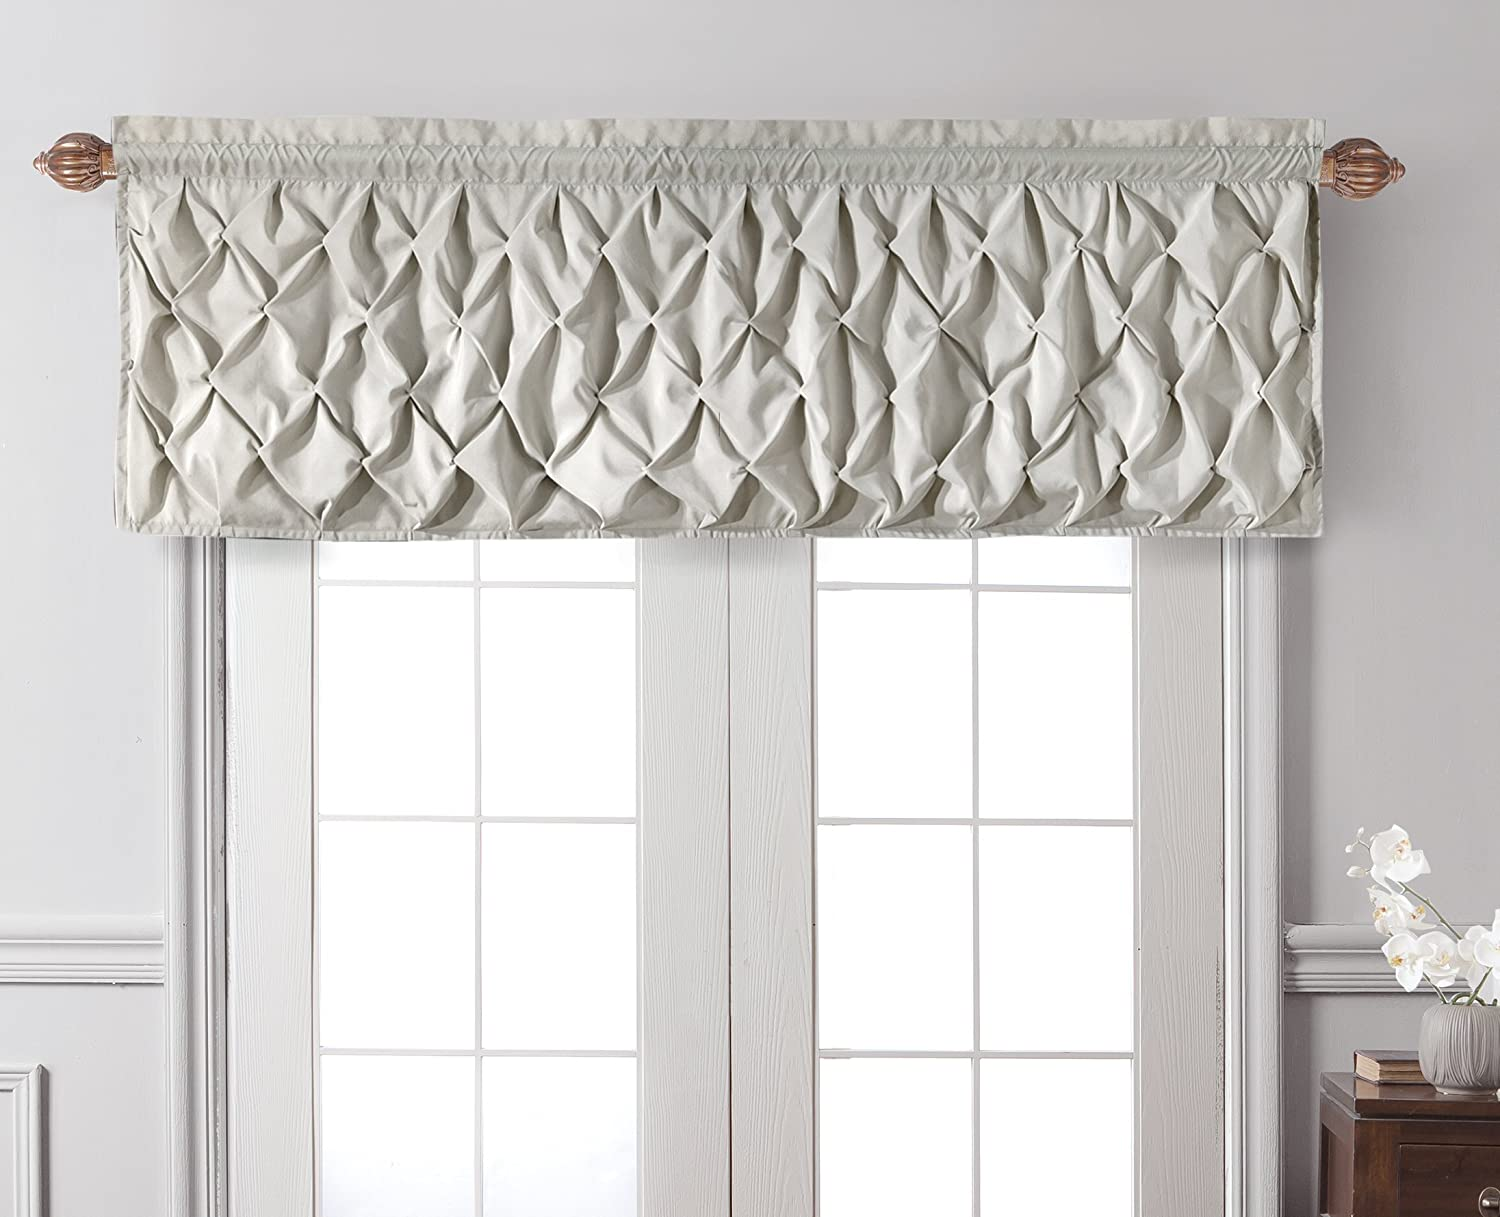 home treatment com carmen blue penneys vcny valances window kitchen amazon dp tailored valance